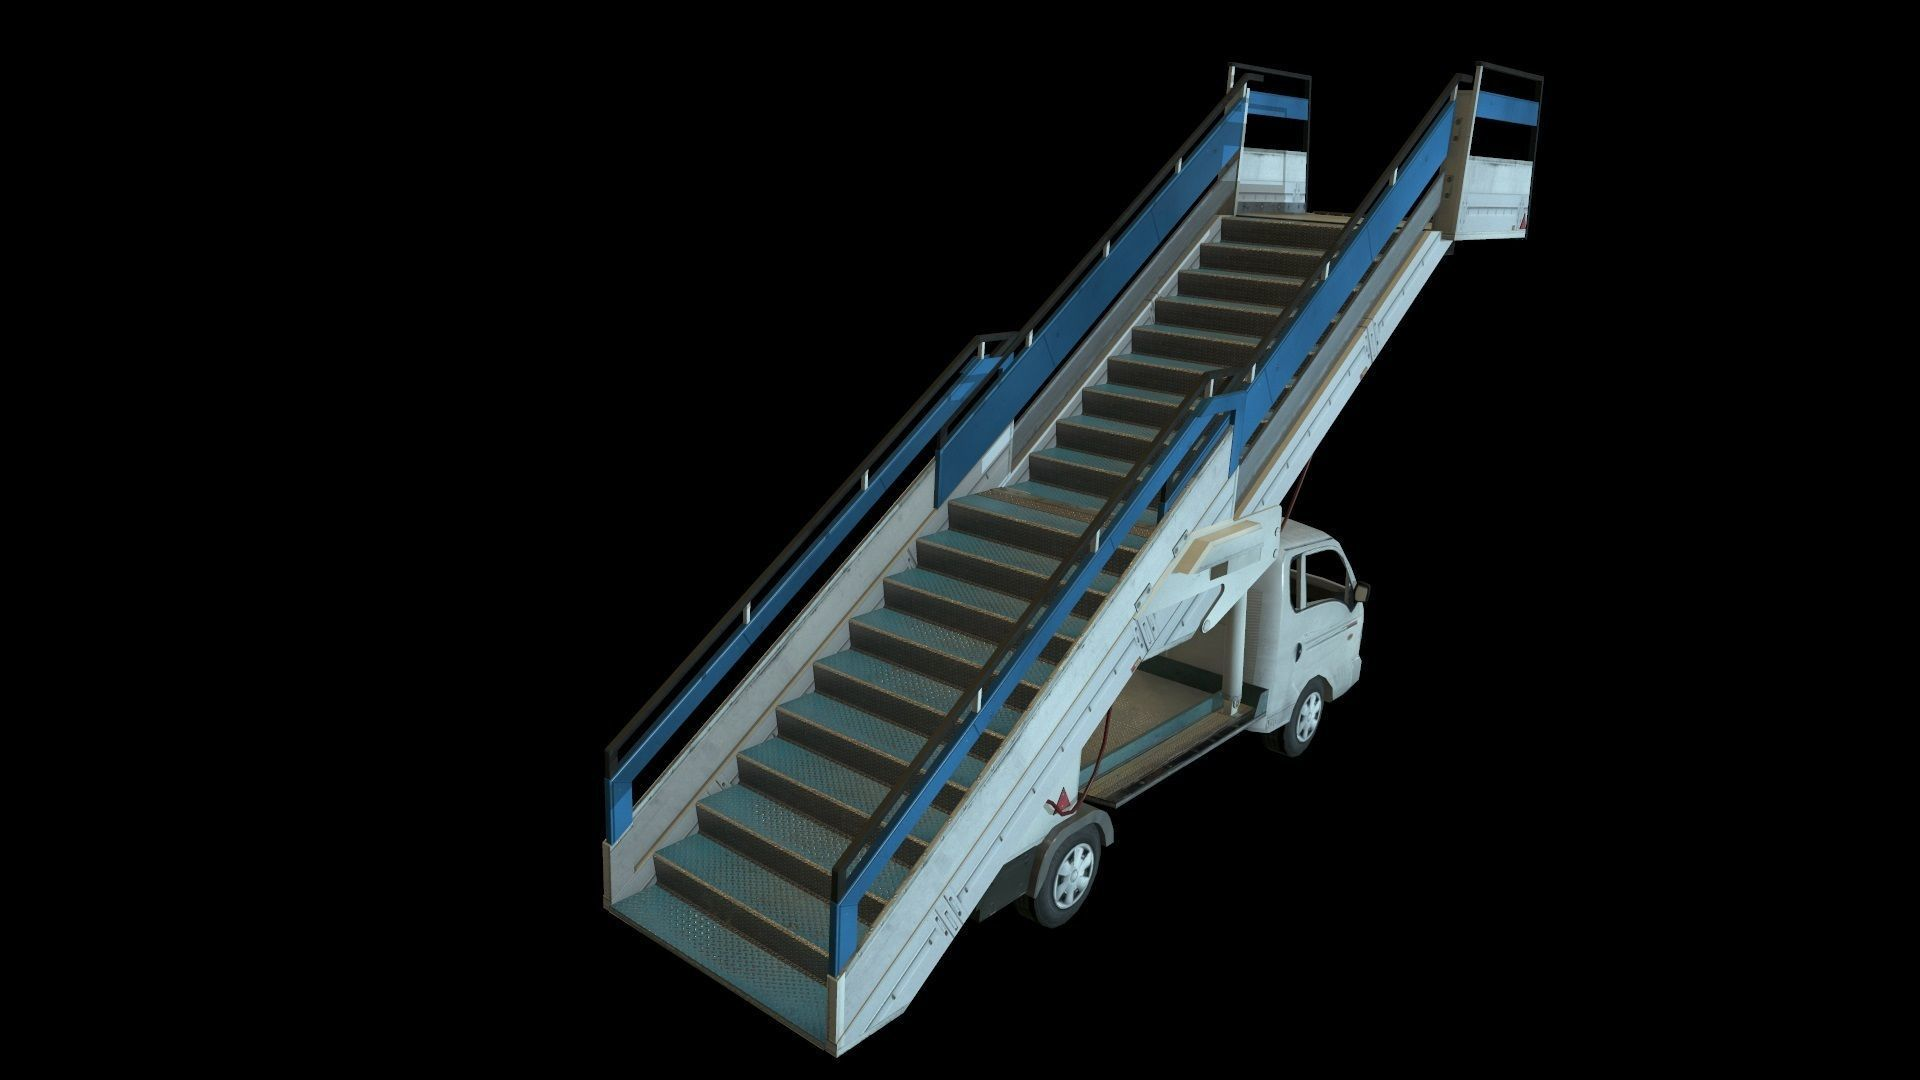 Airport boarding stair truck